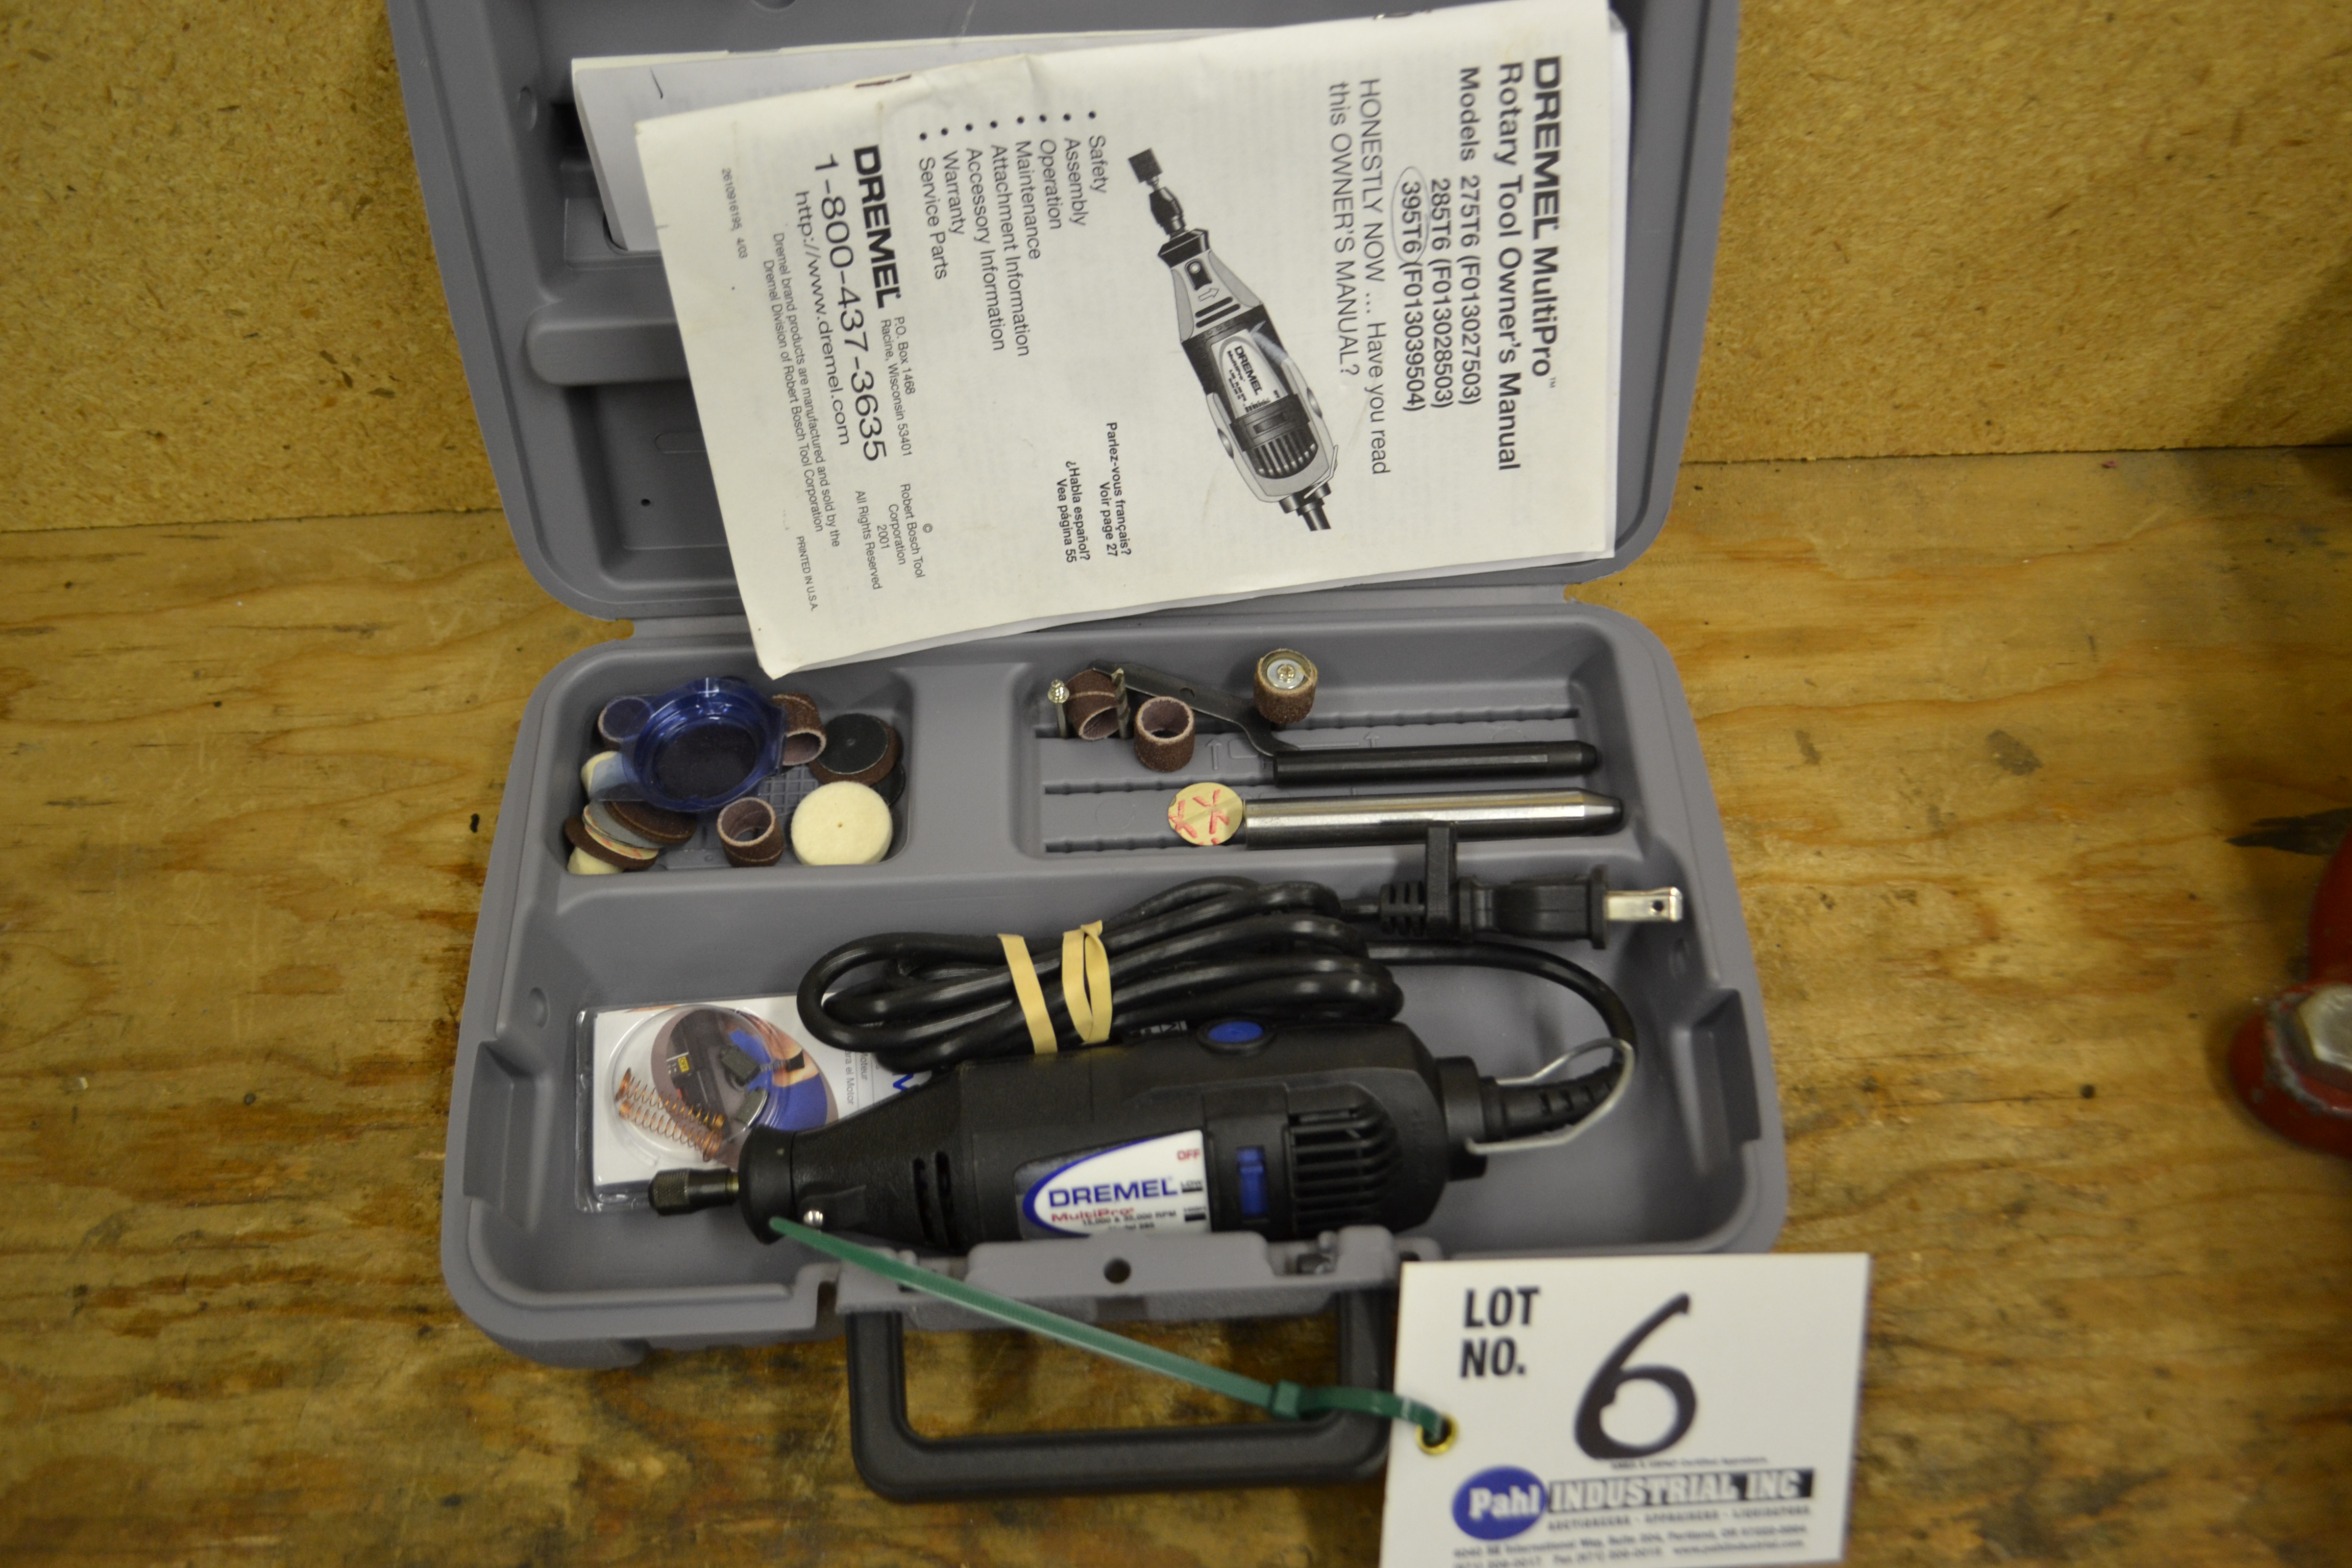 Dremel Multipro Model 395T6 Rotary Tool with attachments in box